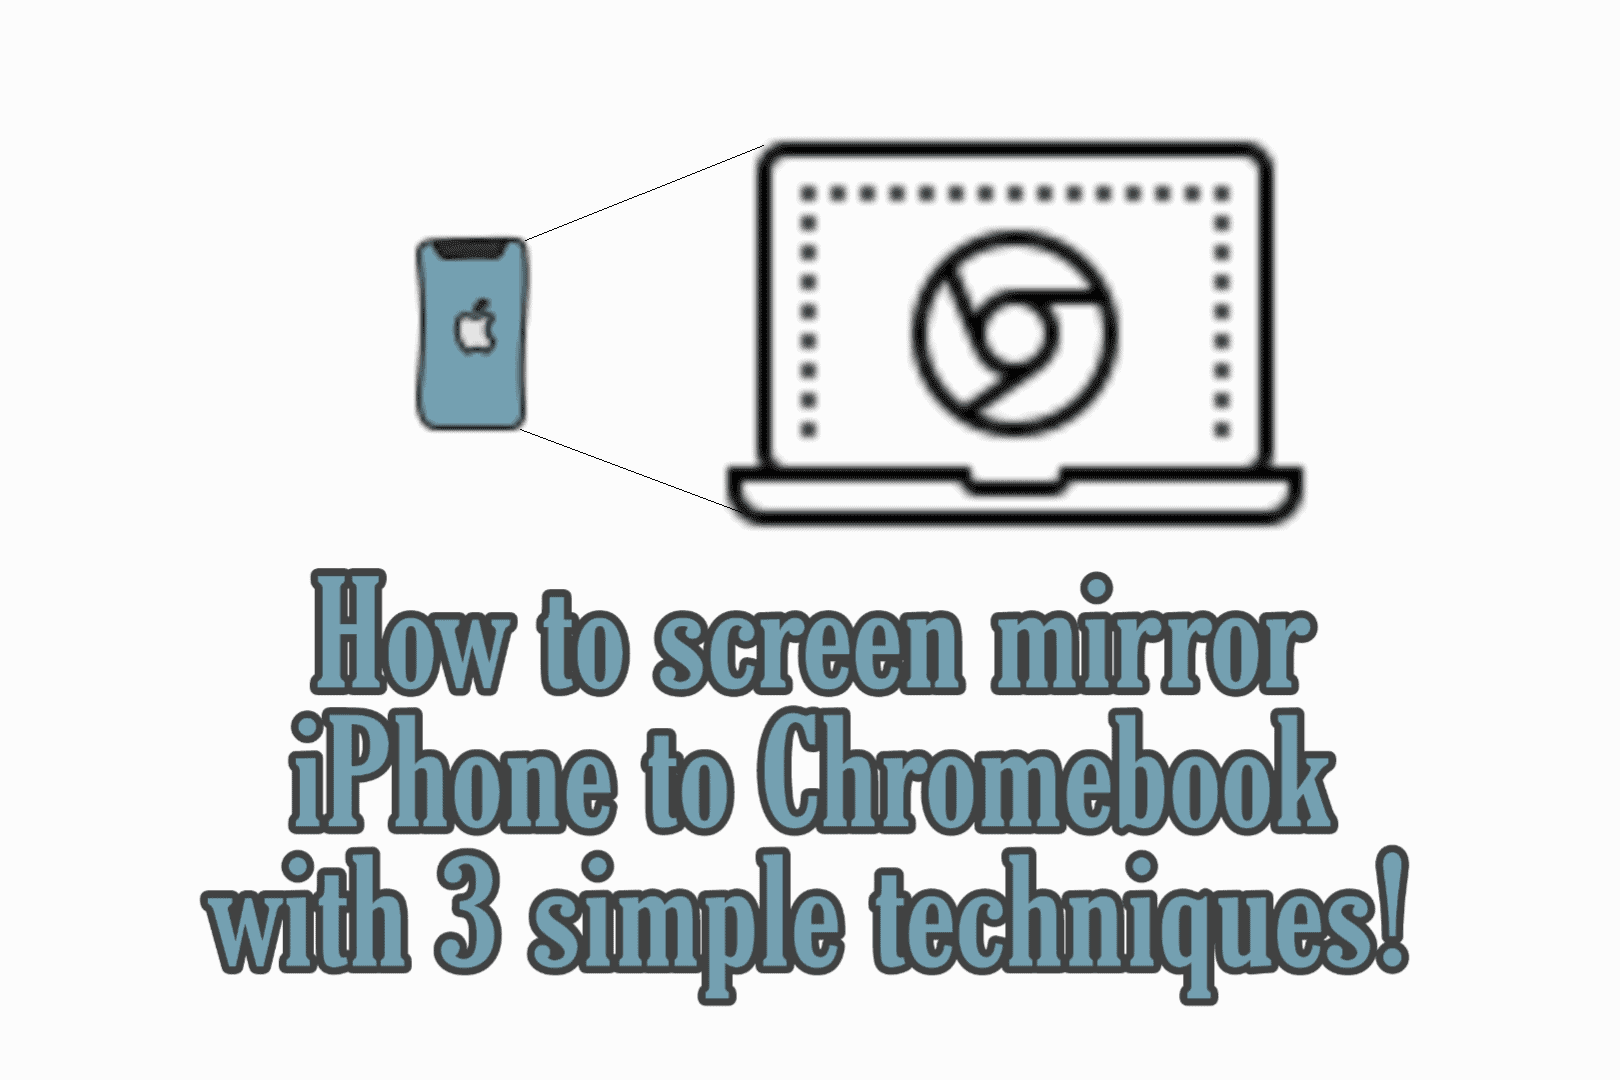 how to screen mirror iPhone to Chromebook